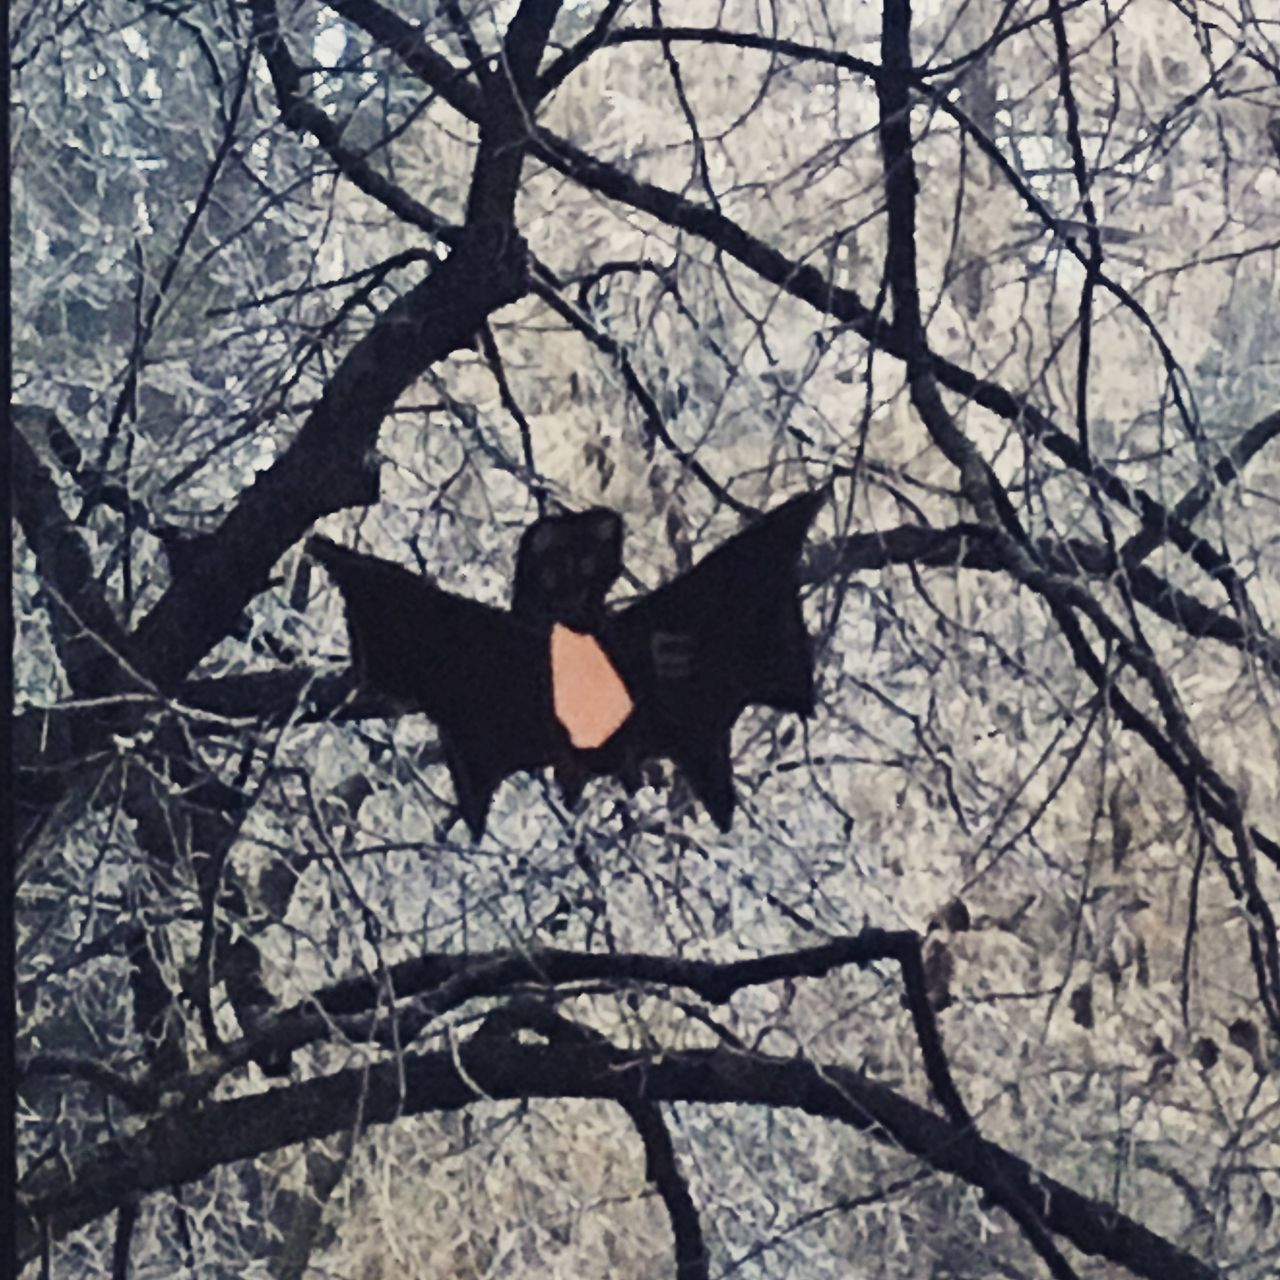 Bare Tree Batman Branch Close-up Creativity Handicrafts Outdoors Tree Winter Wonderland